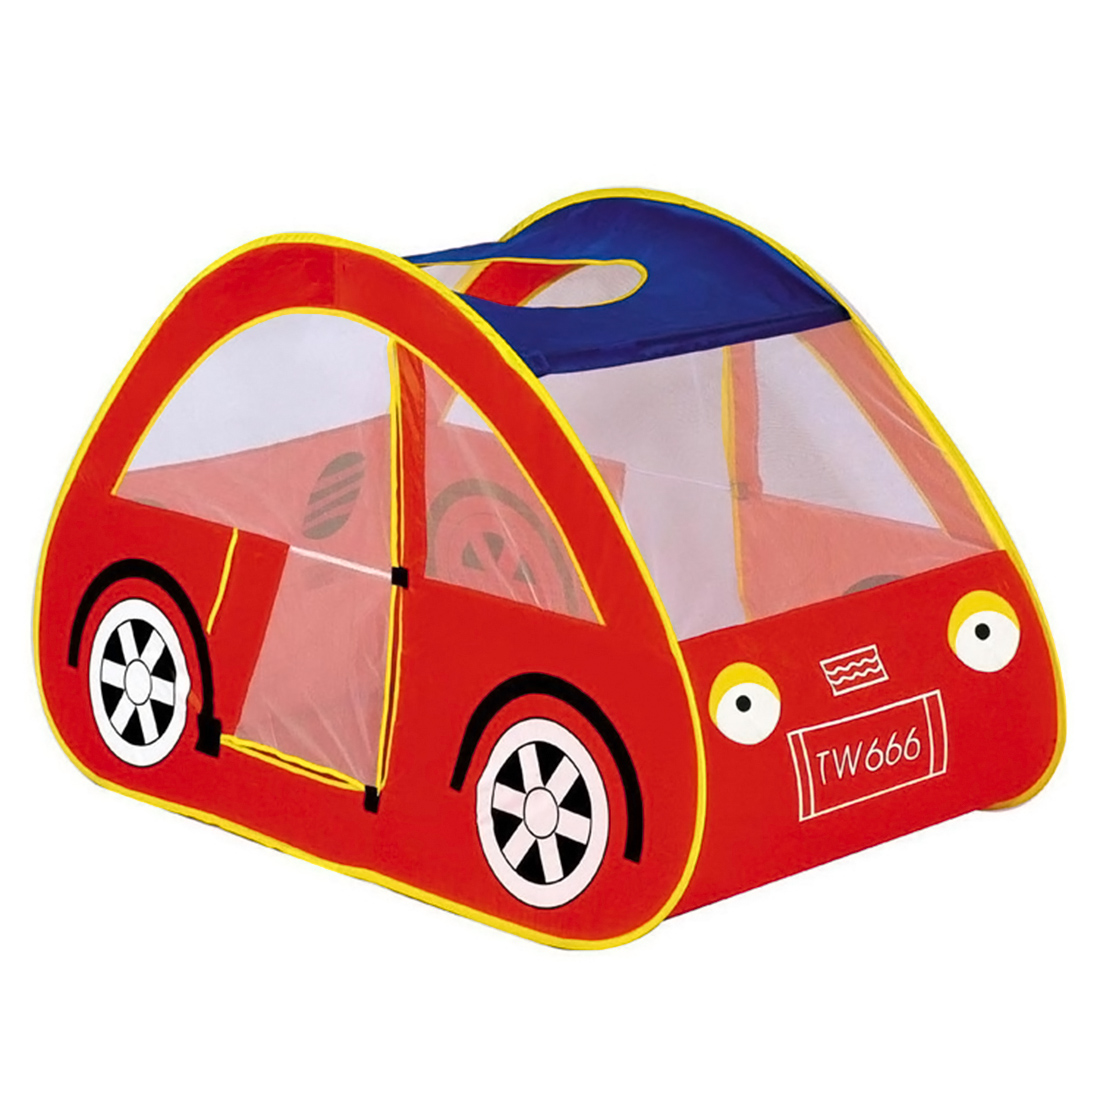 Red Car Shape Baby Playpens Portable Play Tent Kids Toy House Huge Tent for Children Indoor Play Yard Ocean Stress Ball Pool 5 packs diy french smile stickers manicure nail art decorations round form fringe guides nail sticker stencil